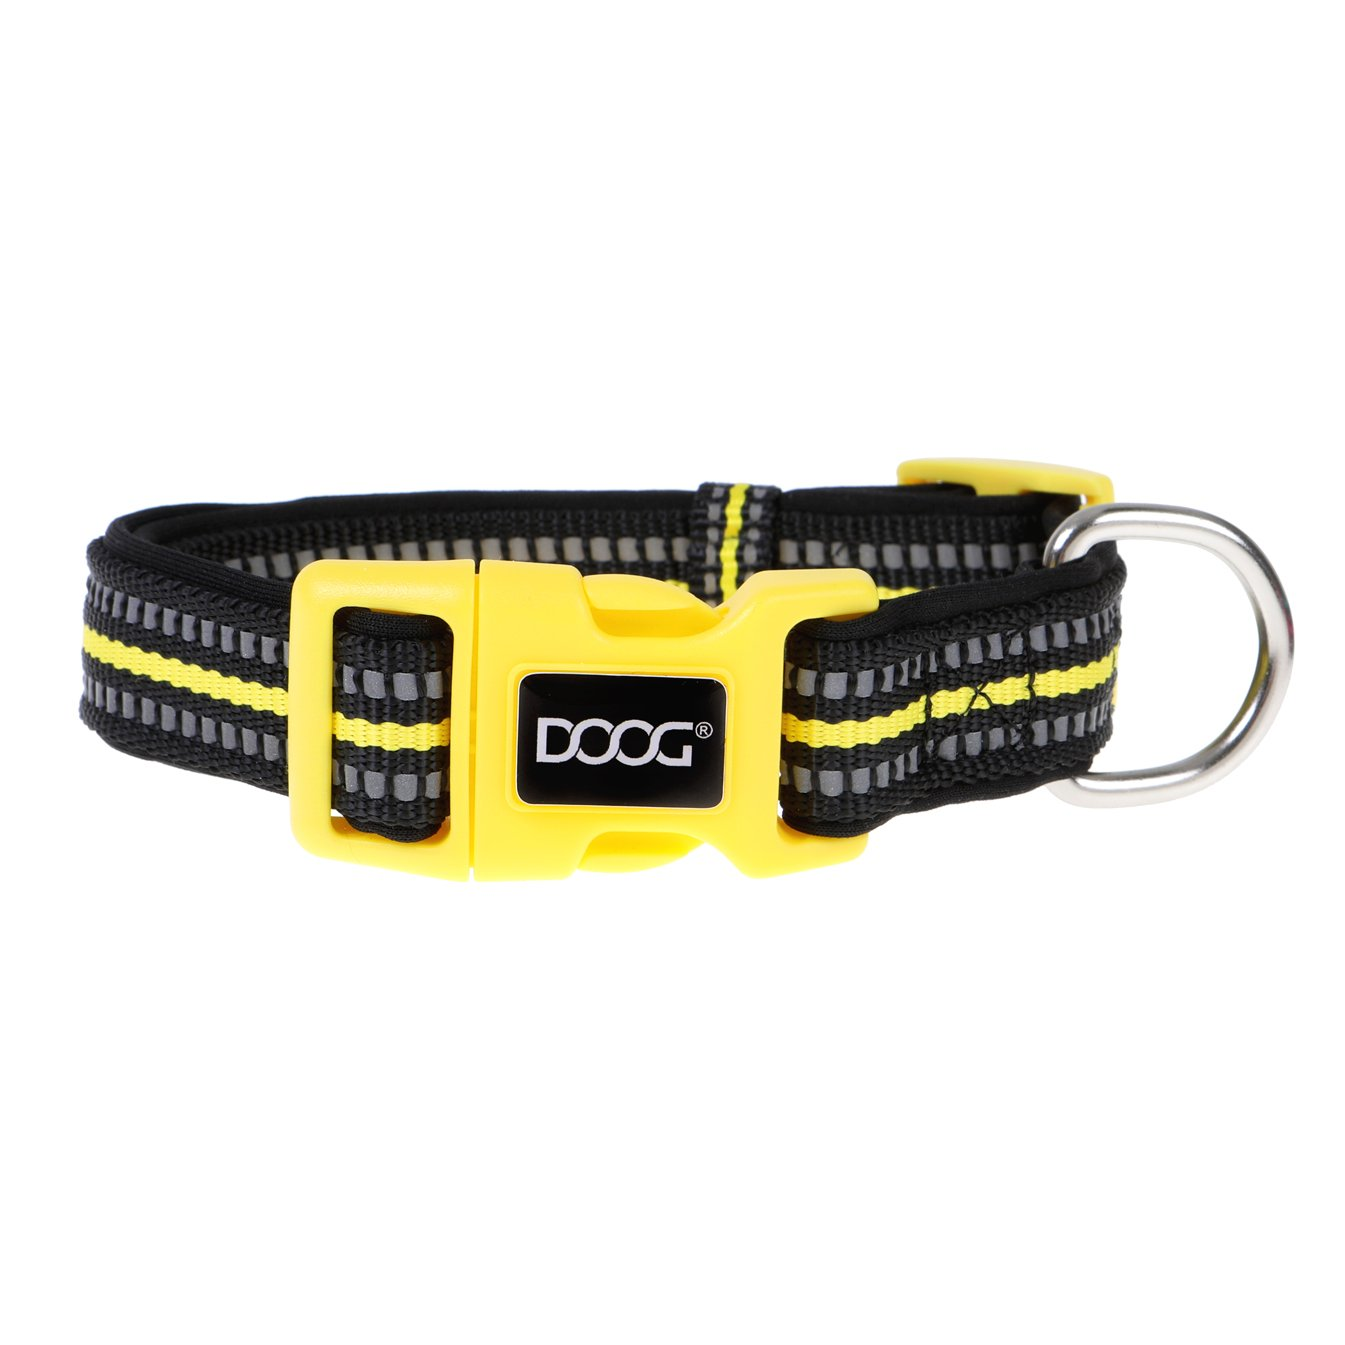 Dog Owners Outdoor Gear DOOG7764